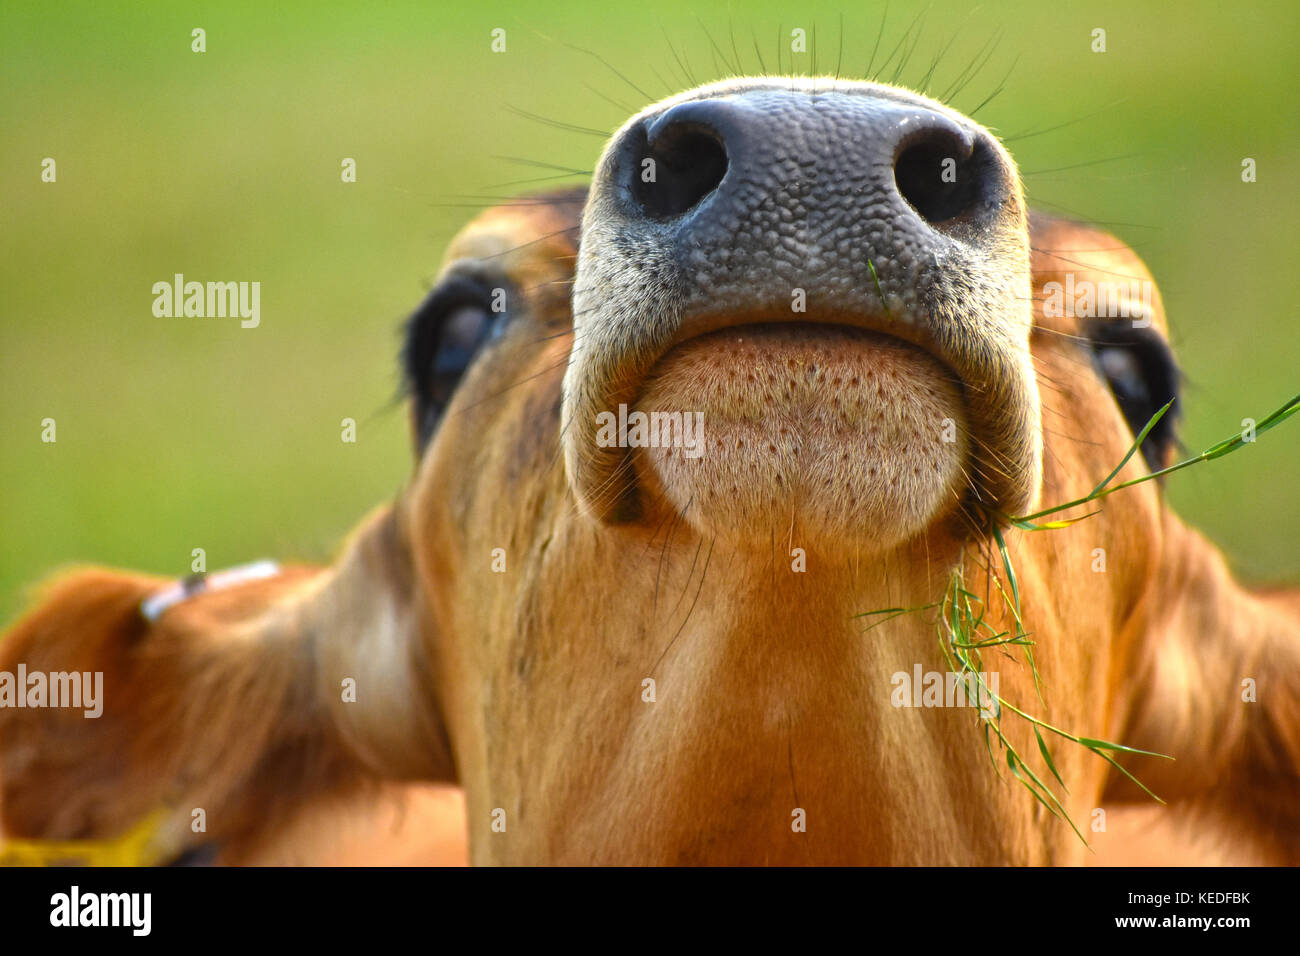 Cows head tilted upward showing the details on the nose including the nostrils, mouth, whiskers and some grass. - Stock Image